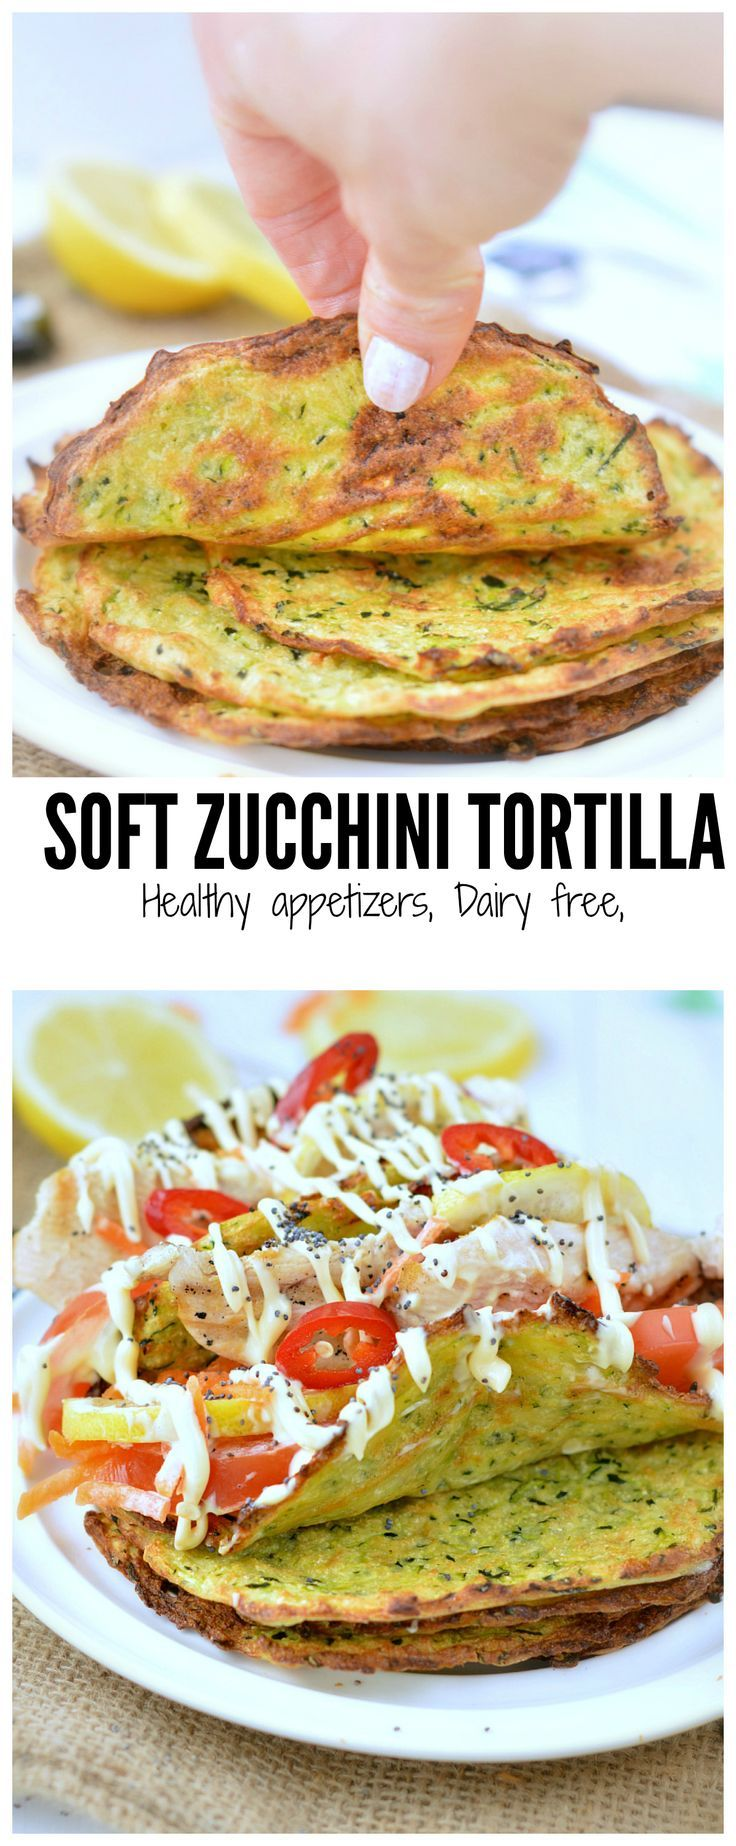 Clean eating recipe for tortilla ? Yes ! It is possible and this healthy zucchini tortilla will blow your mind ! A dairy free tortilla with no cheese and only nourishing zucchini, coconut flour and arrowroot flour. Yum! A great healthy appetizer recipe or healthy party food recipe for game day. A simple healthy dinner recipe too to sneak veggie in kids plate !